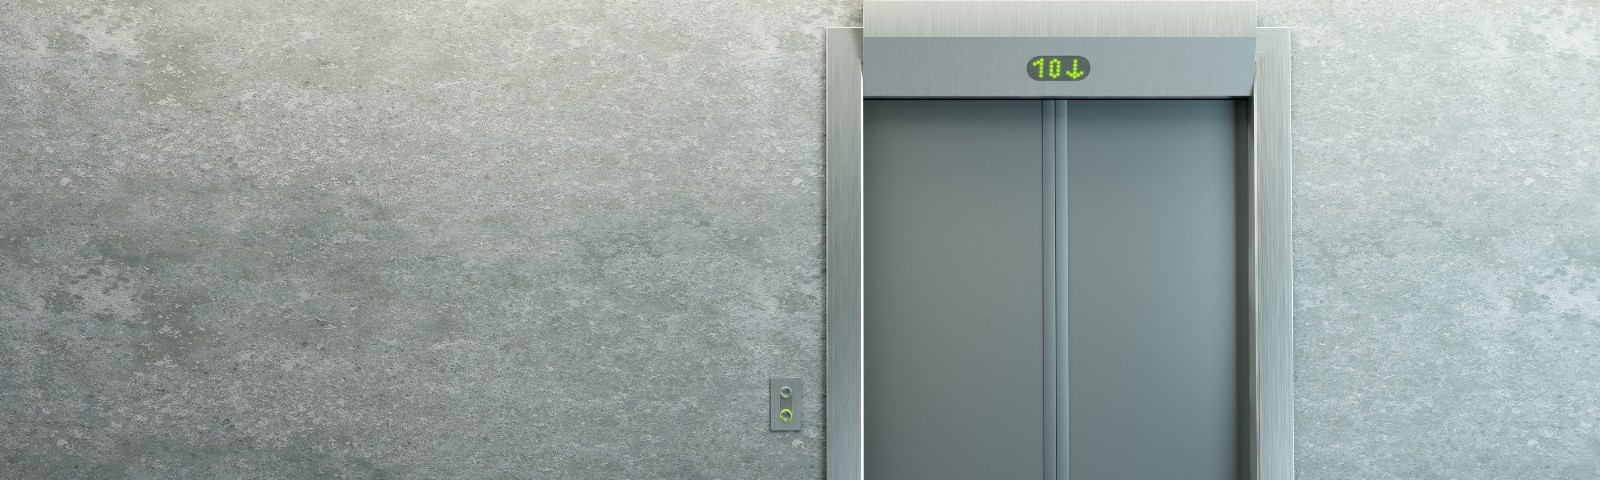 The closed door of an elevator against a grey wall